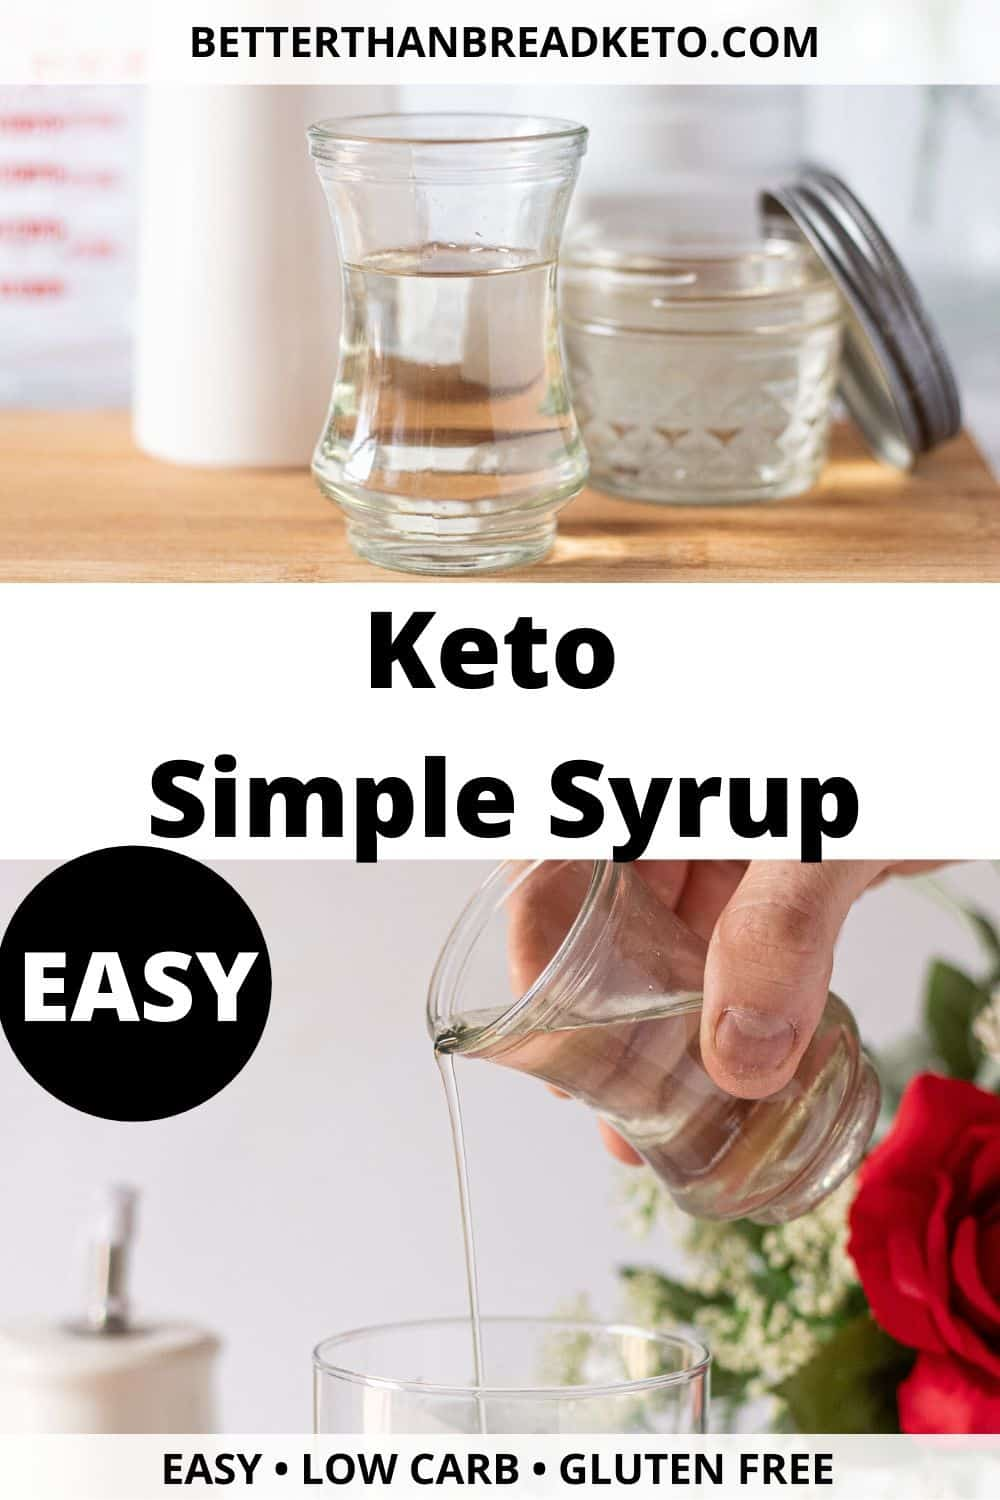 Keto Simple Syrup